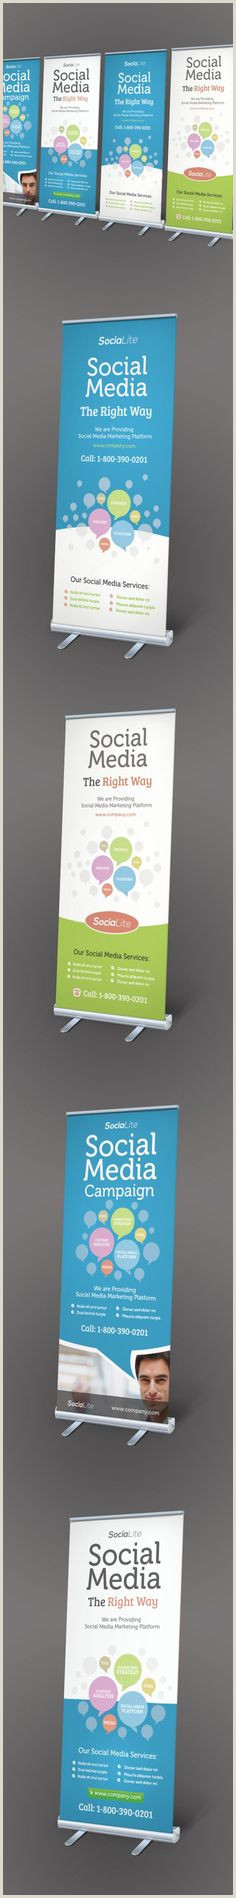 Standard Pop Up Banner Sizes 16 Best Retractable Banners Images